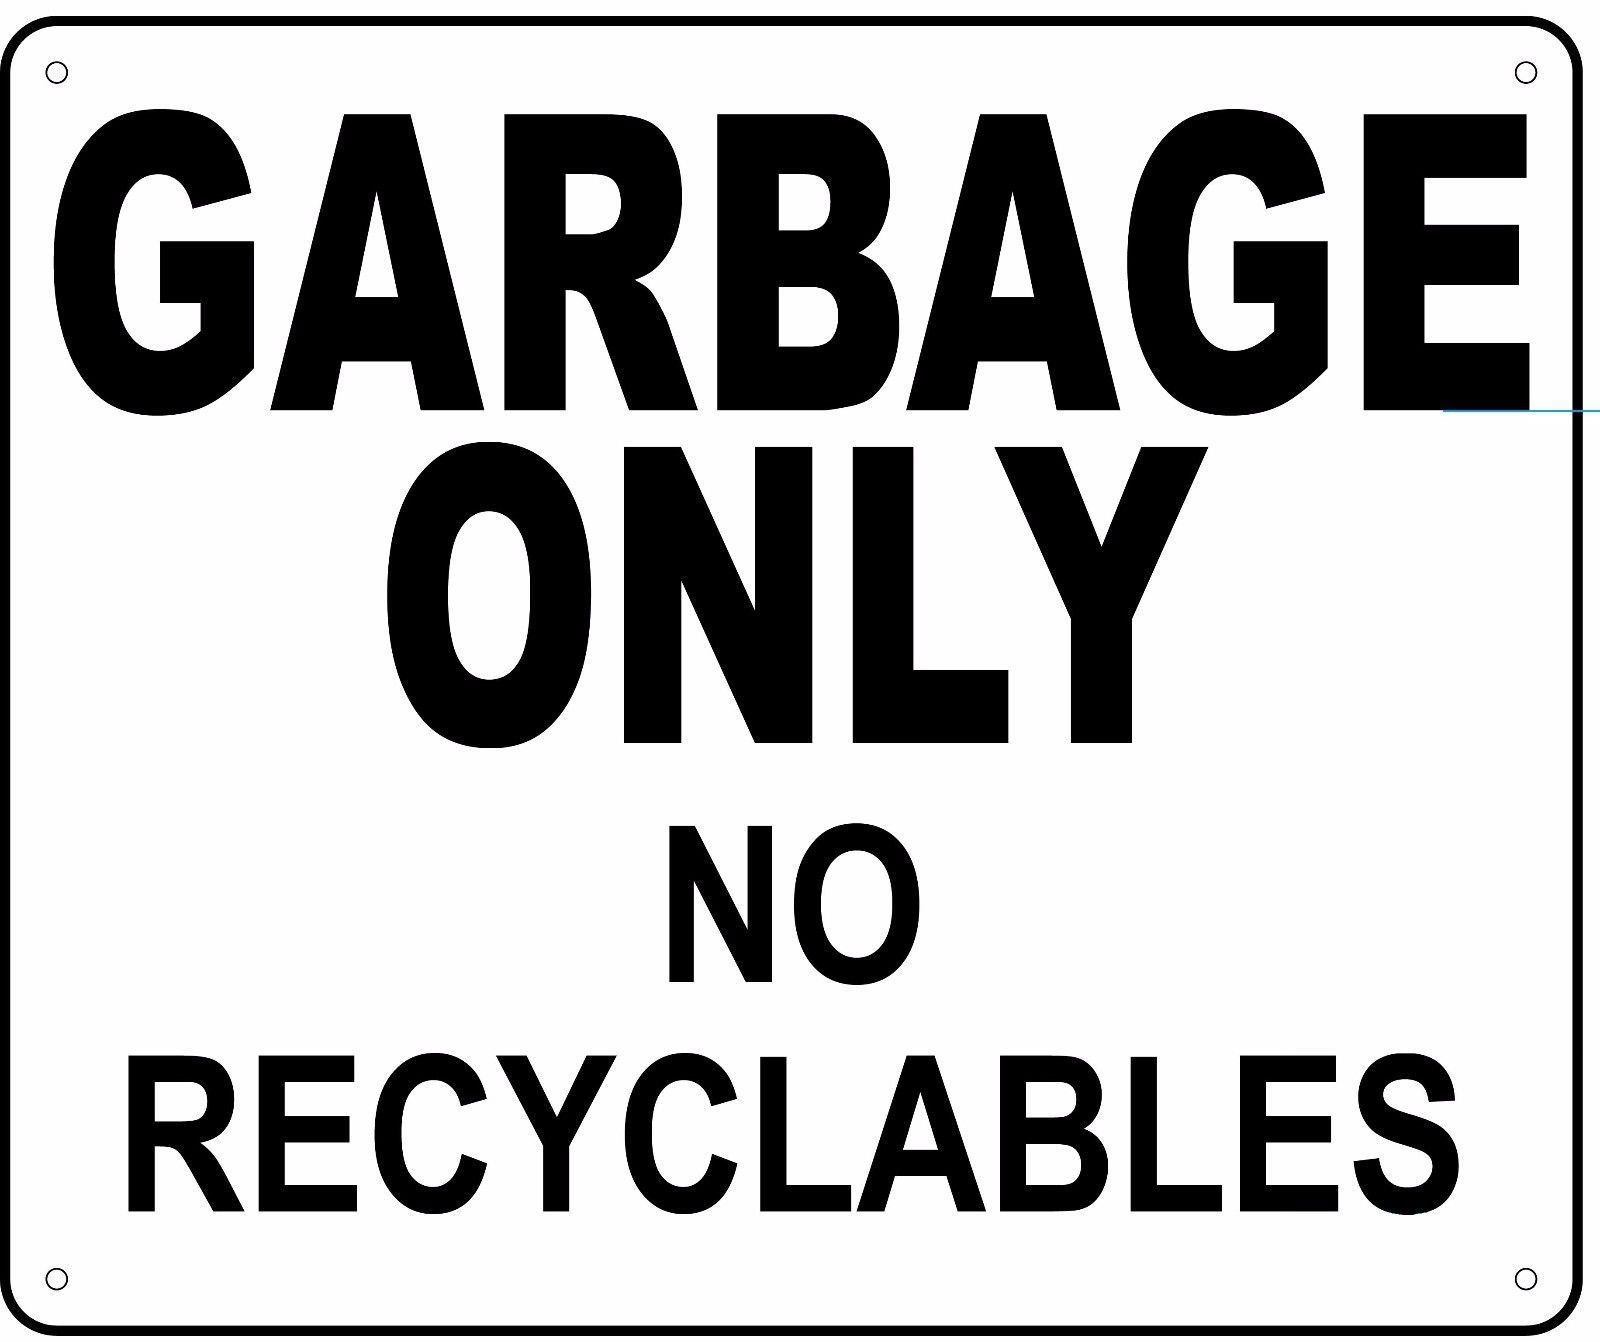 Details about garbage only no recyclables sign 10x12